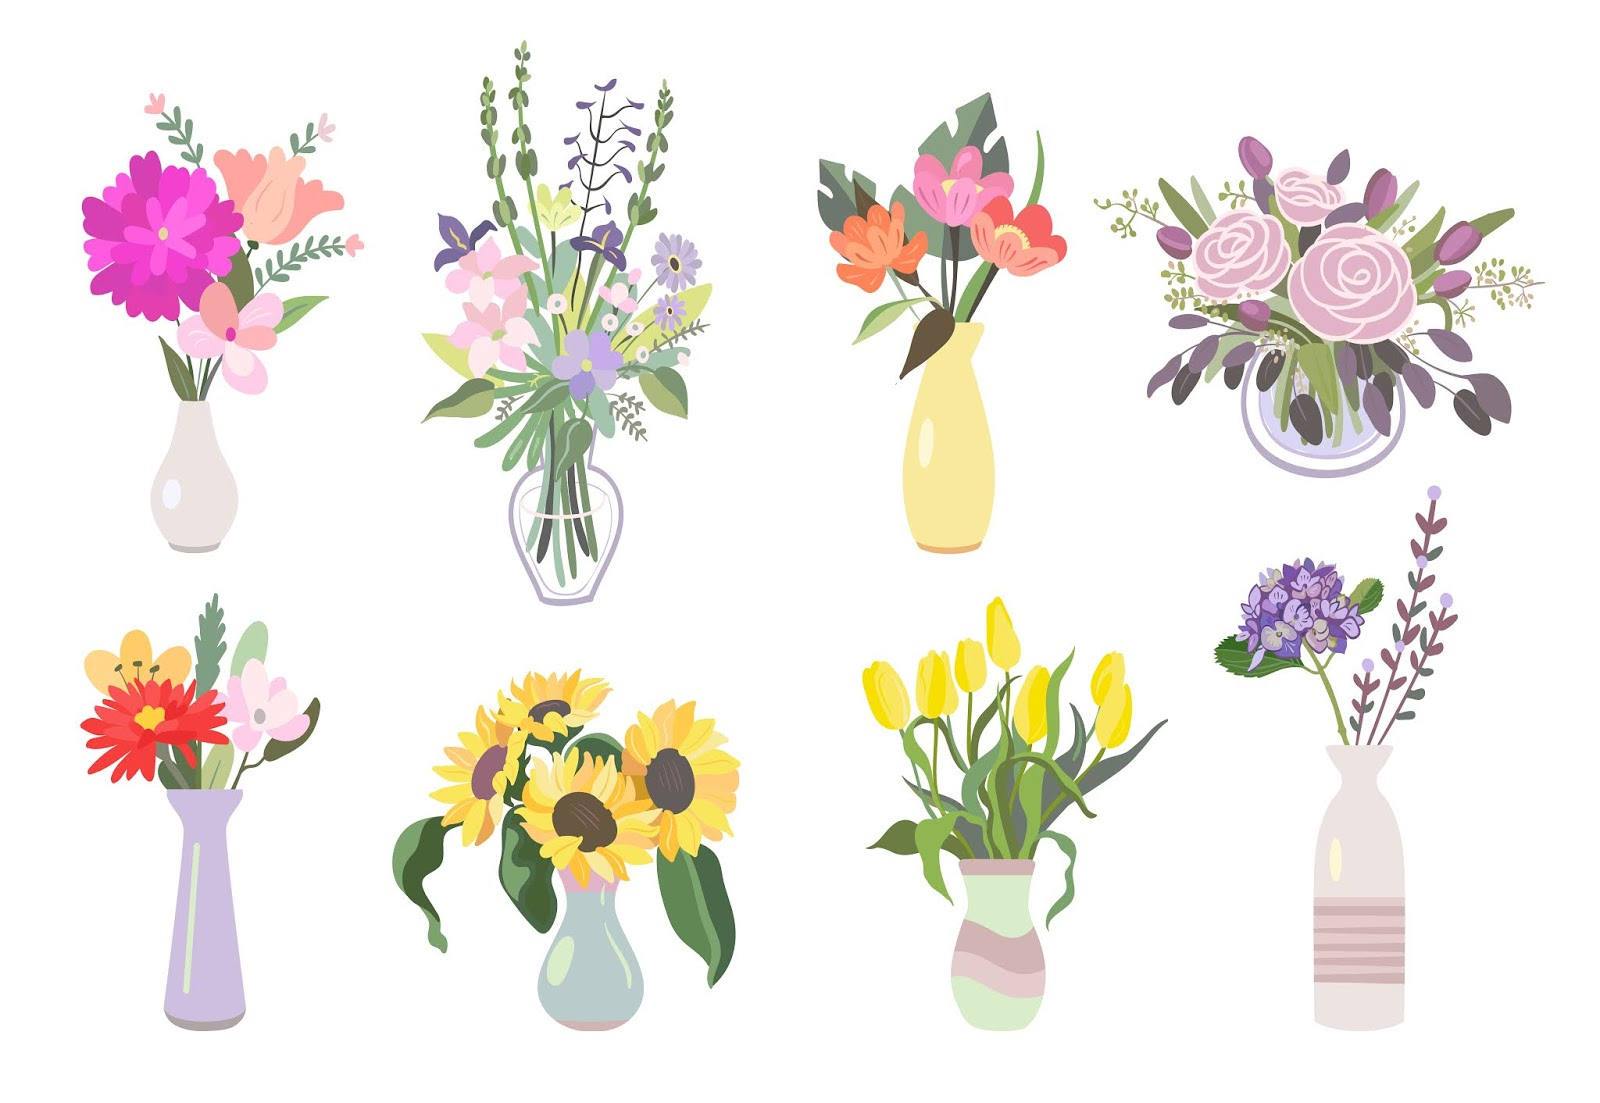 Colorful Flowers Flat Icon Pack Free Download Vector CDR, AI, EPS and PNG Formats